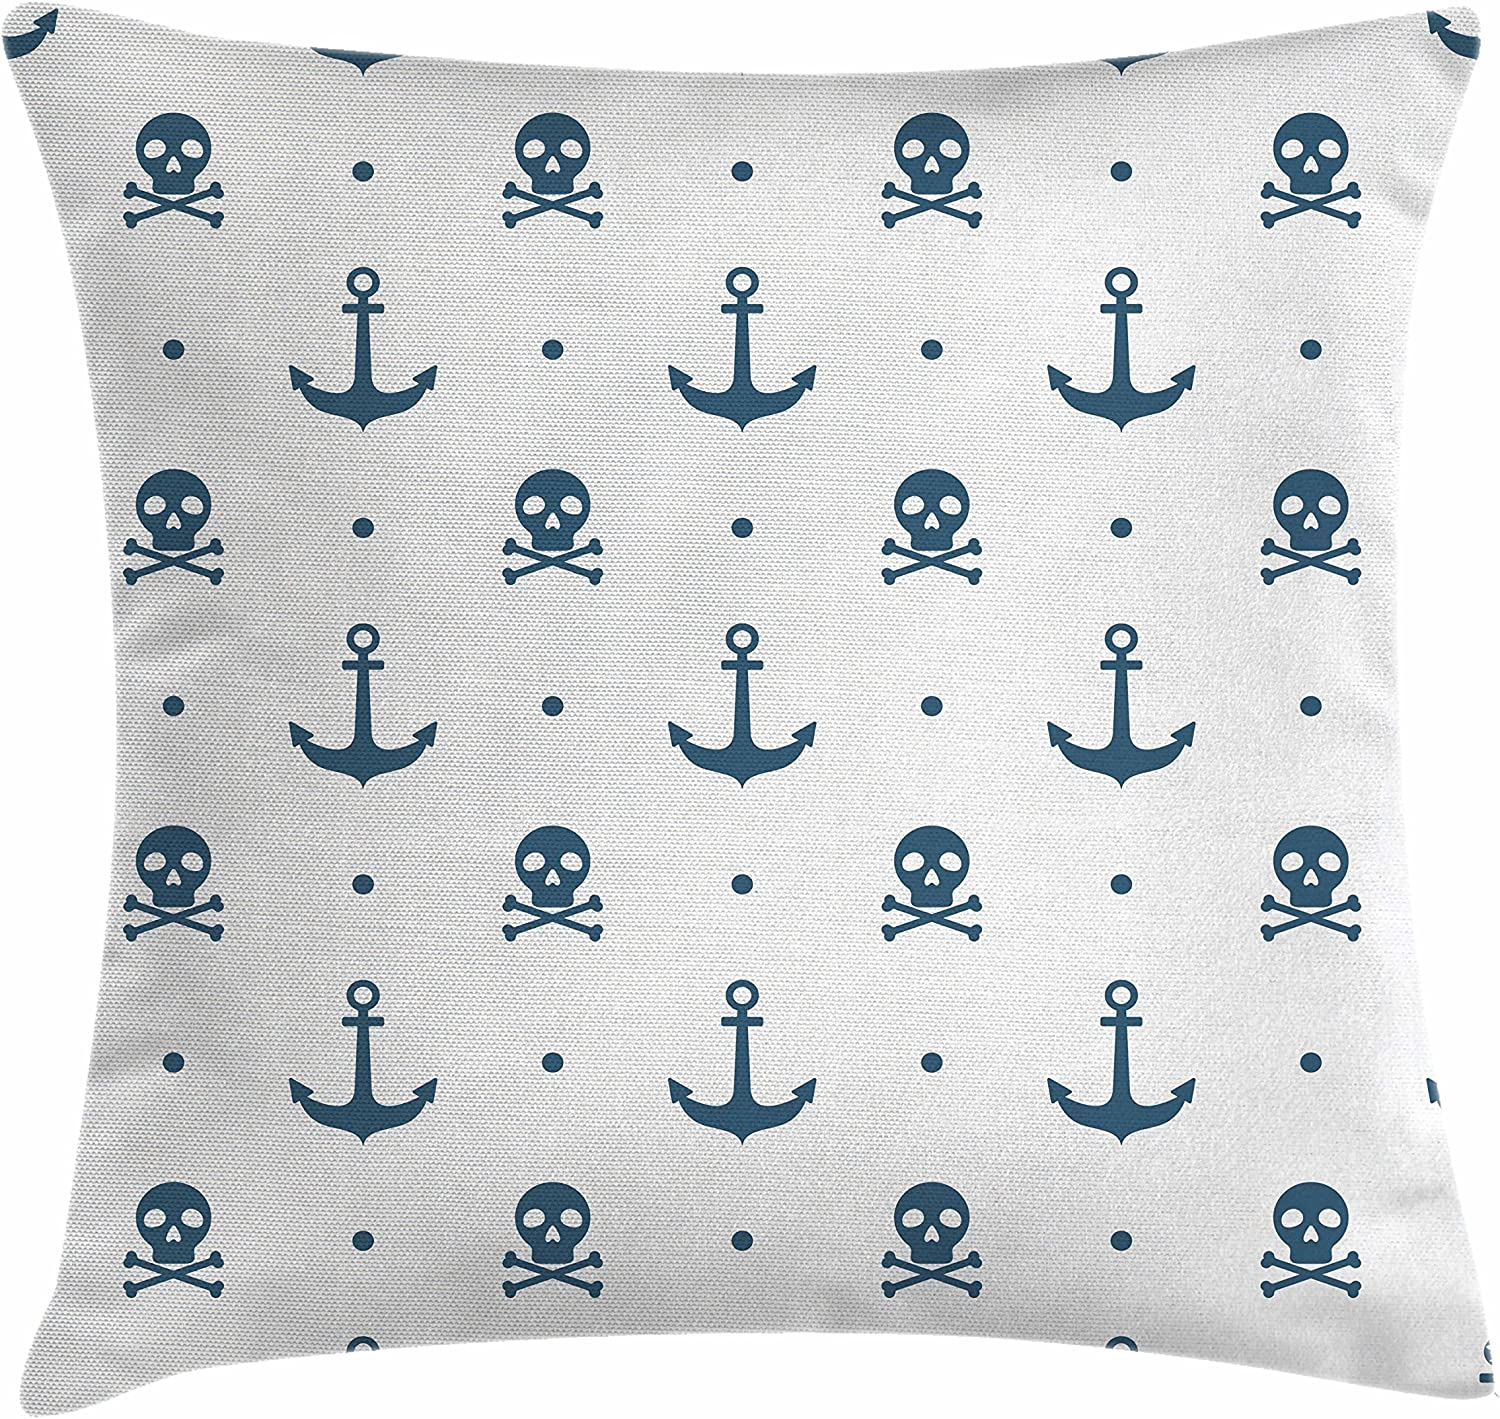 Amazon Com Ambesonne Anchor Throw Pillow Cushion Cover Anchors And Skulls Crossed Bones Dots Pirate Horror Fear Seaman Illustration Art Decorative Square Accent Pillow Case 24 X 24 Navy Blue Home Kitchen